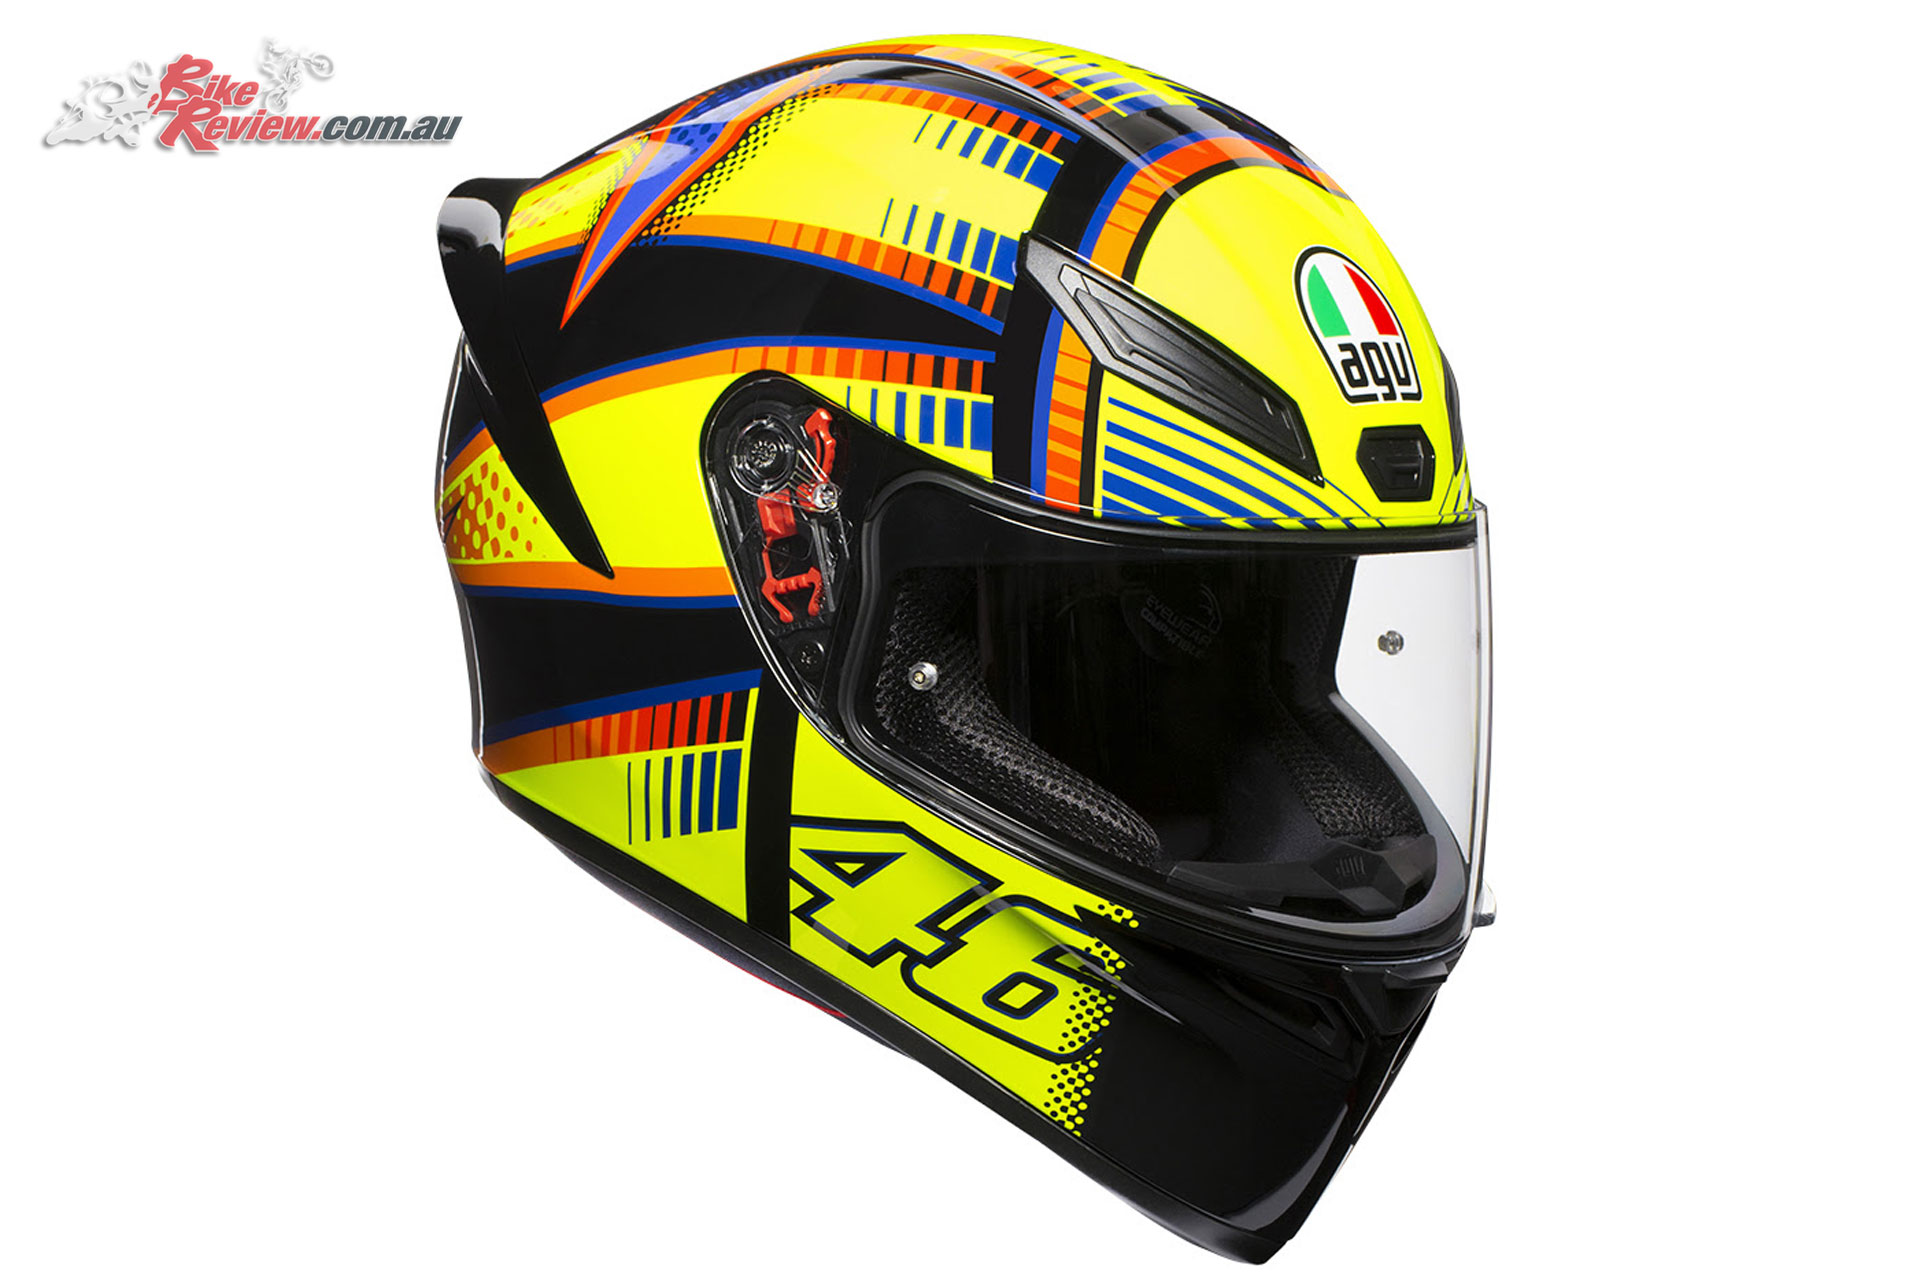 AGV K-1 Helmets will also be provided, also with an option to upgrade